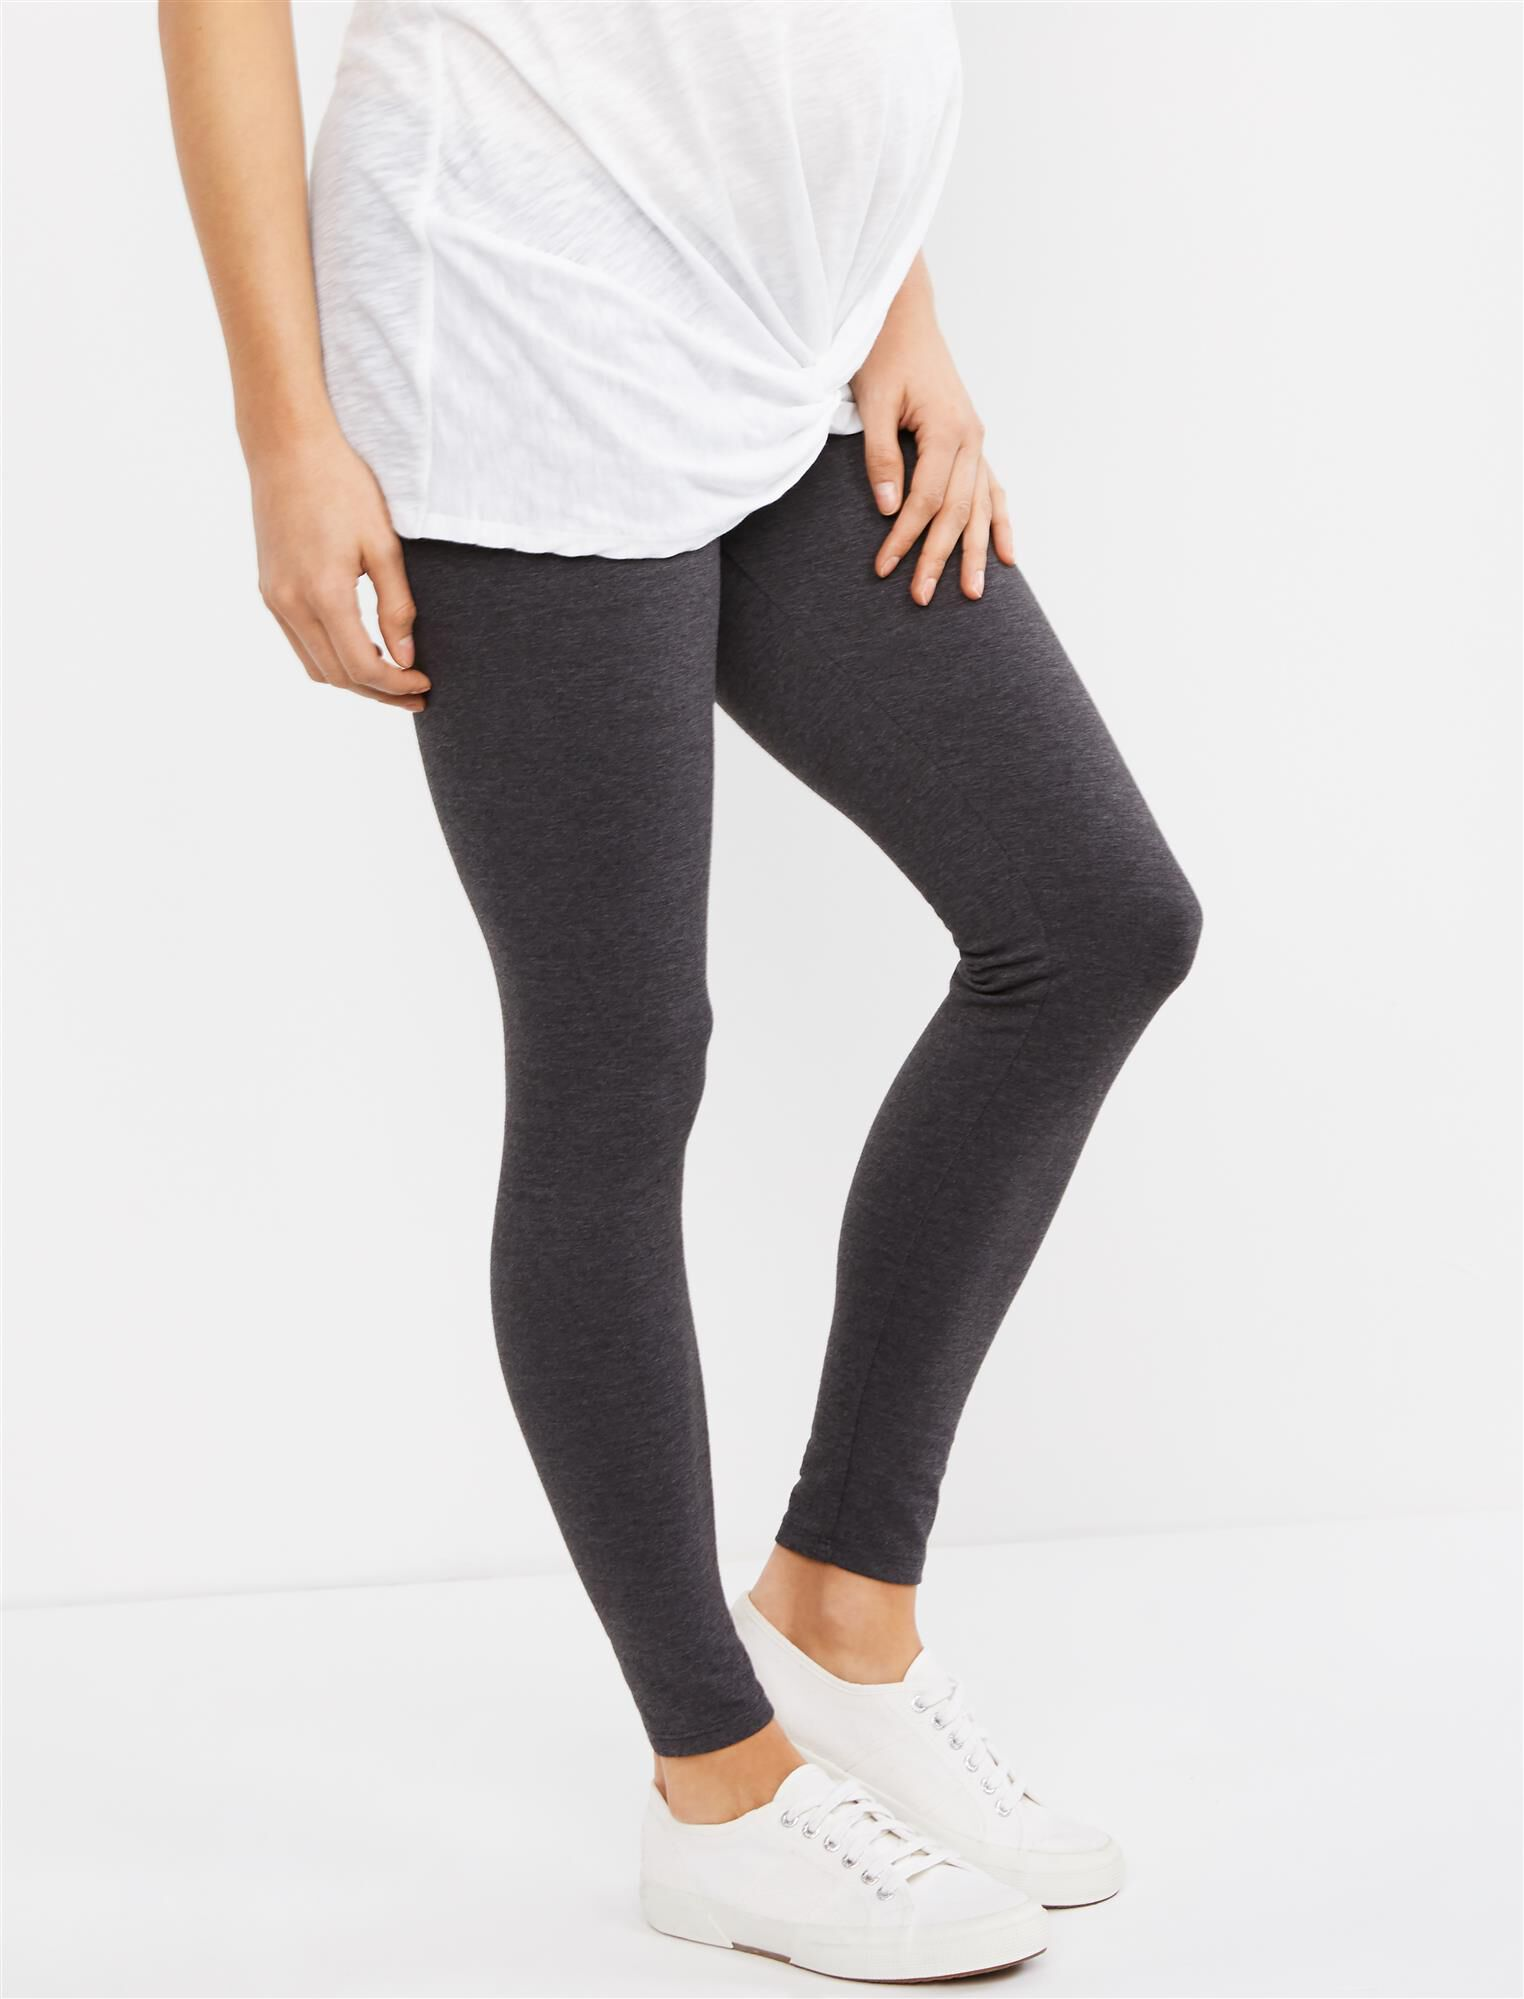 Secret Fit Belly Heathered Maternity Leggings